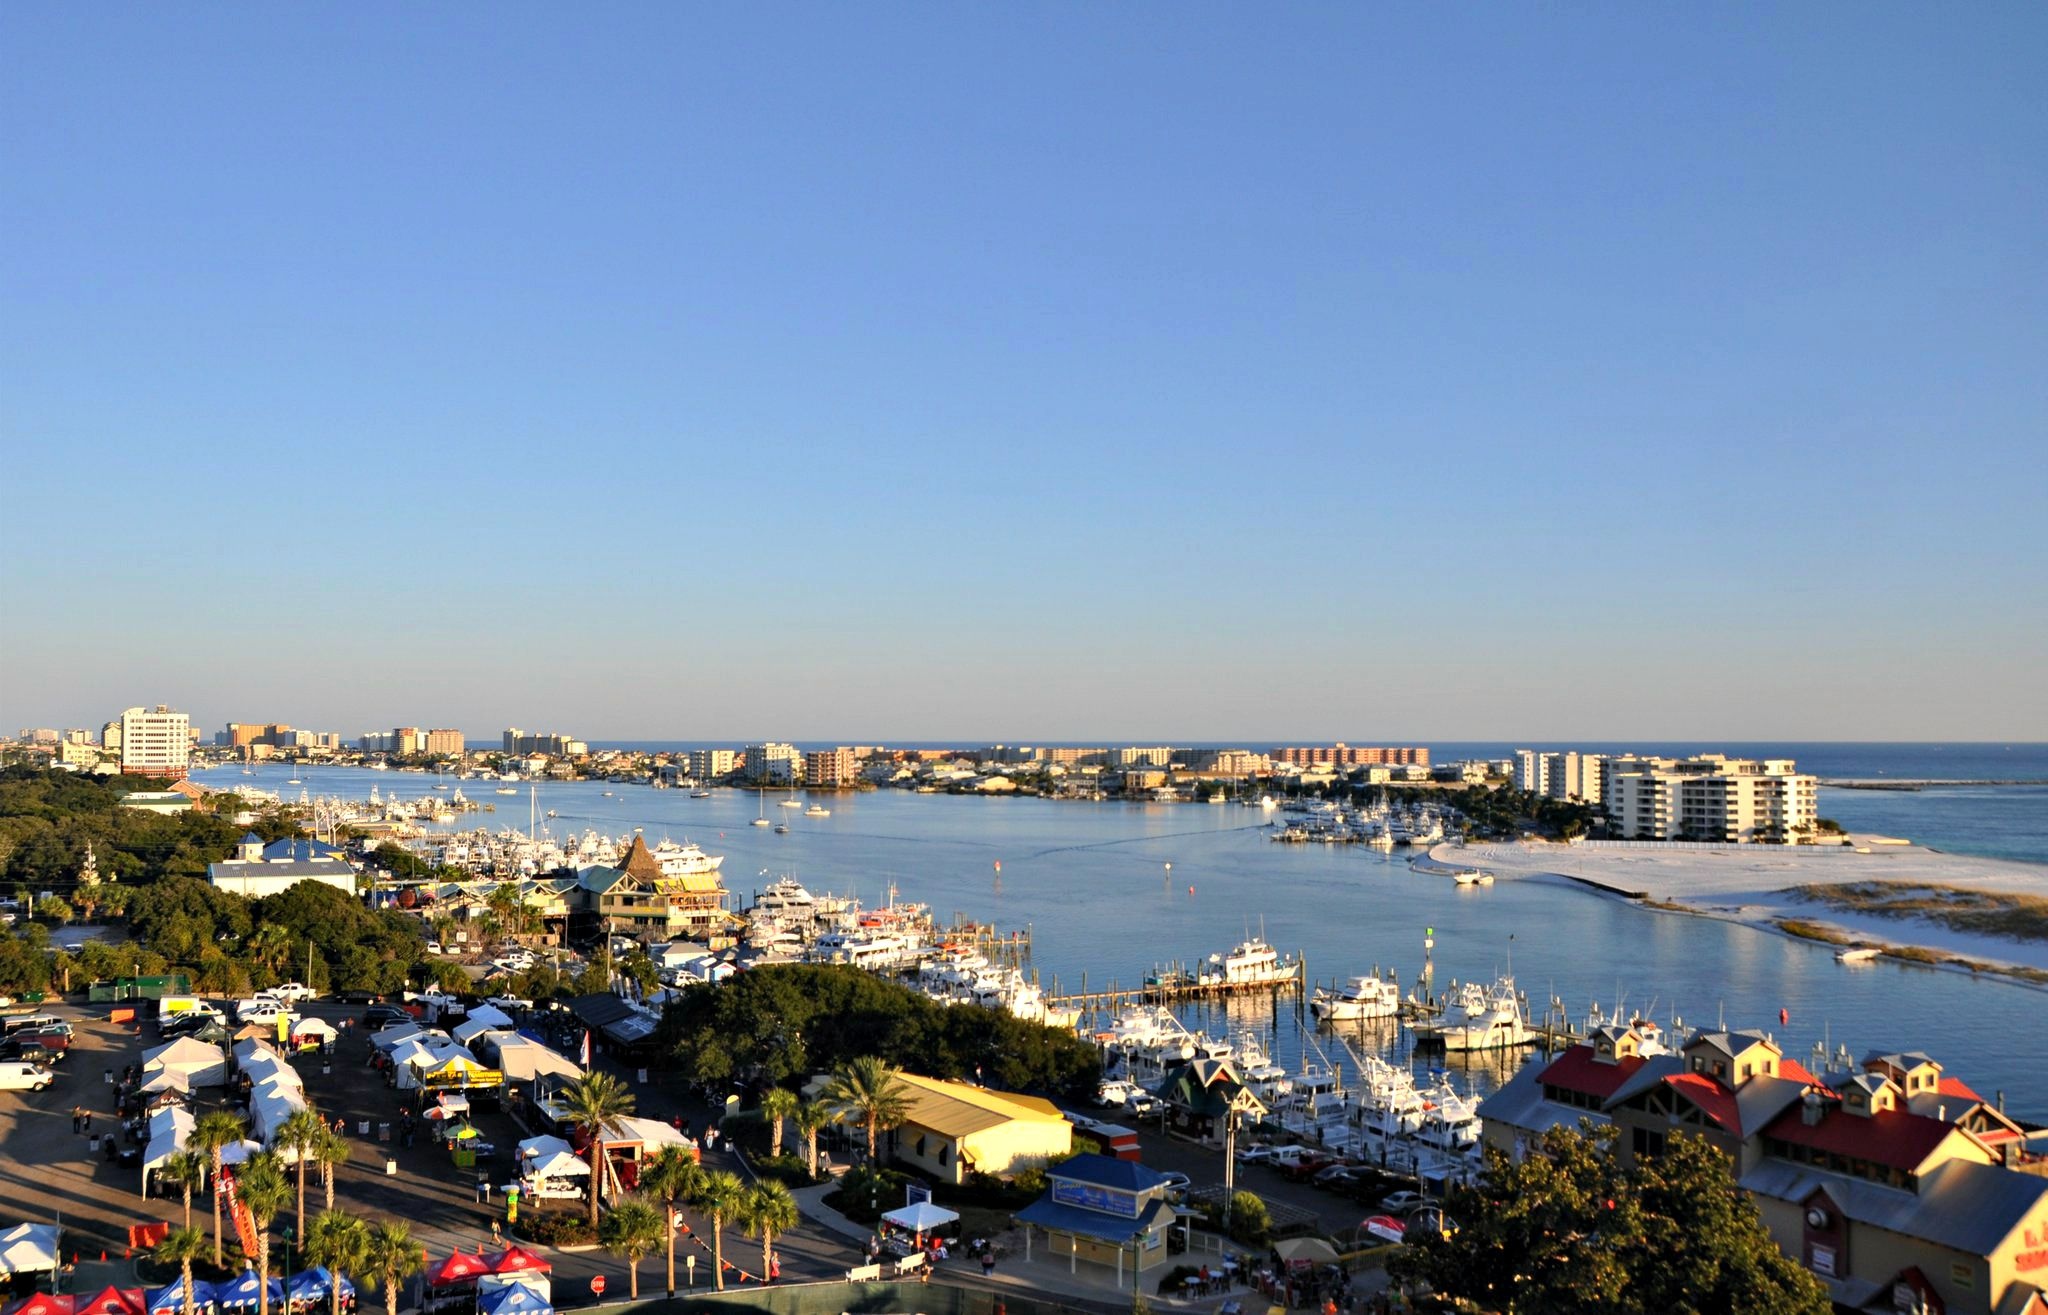 Don T Miss The 37th Annual Destin Seafood Festival